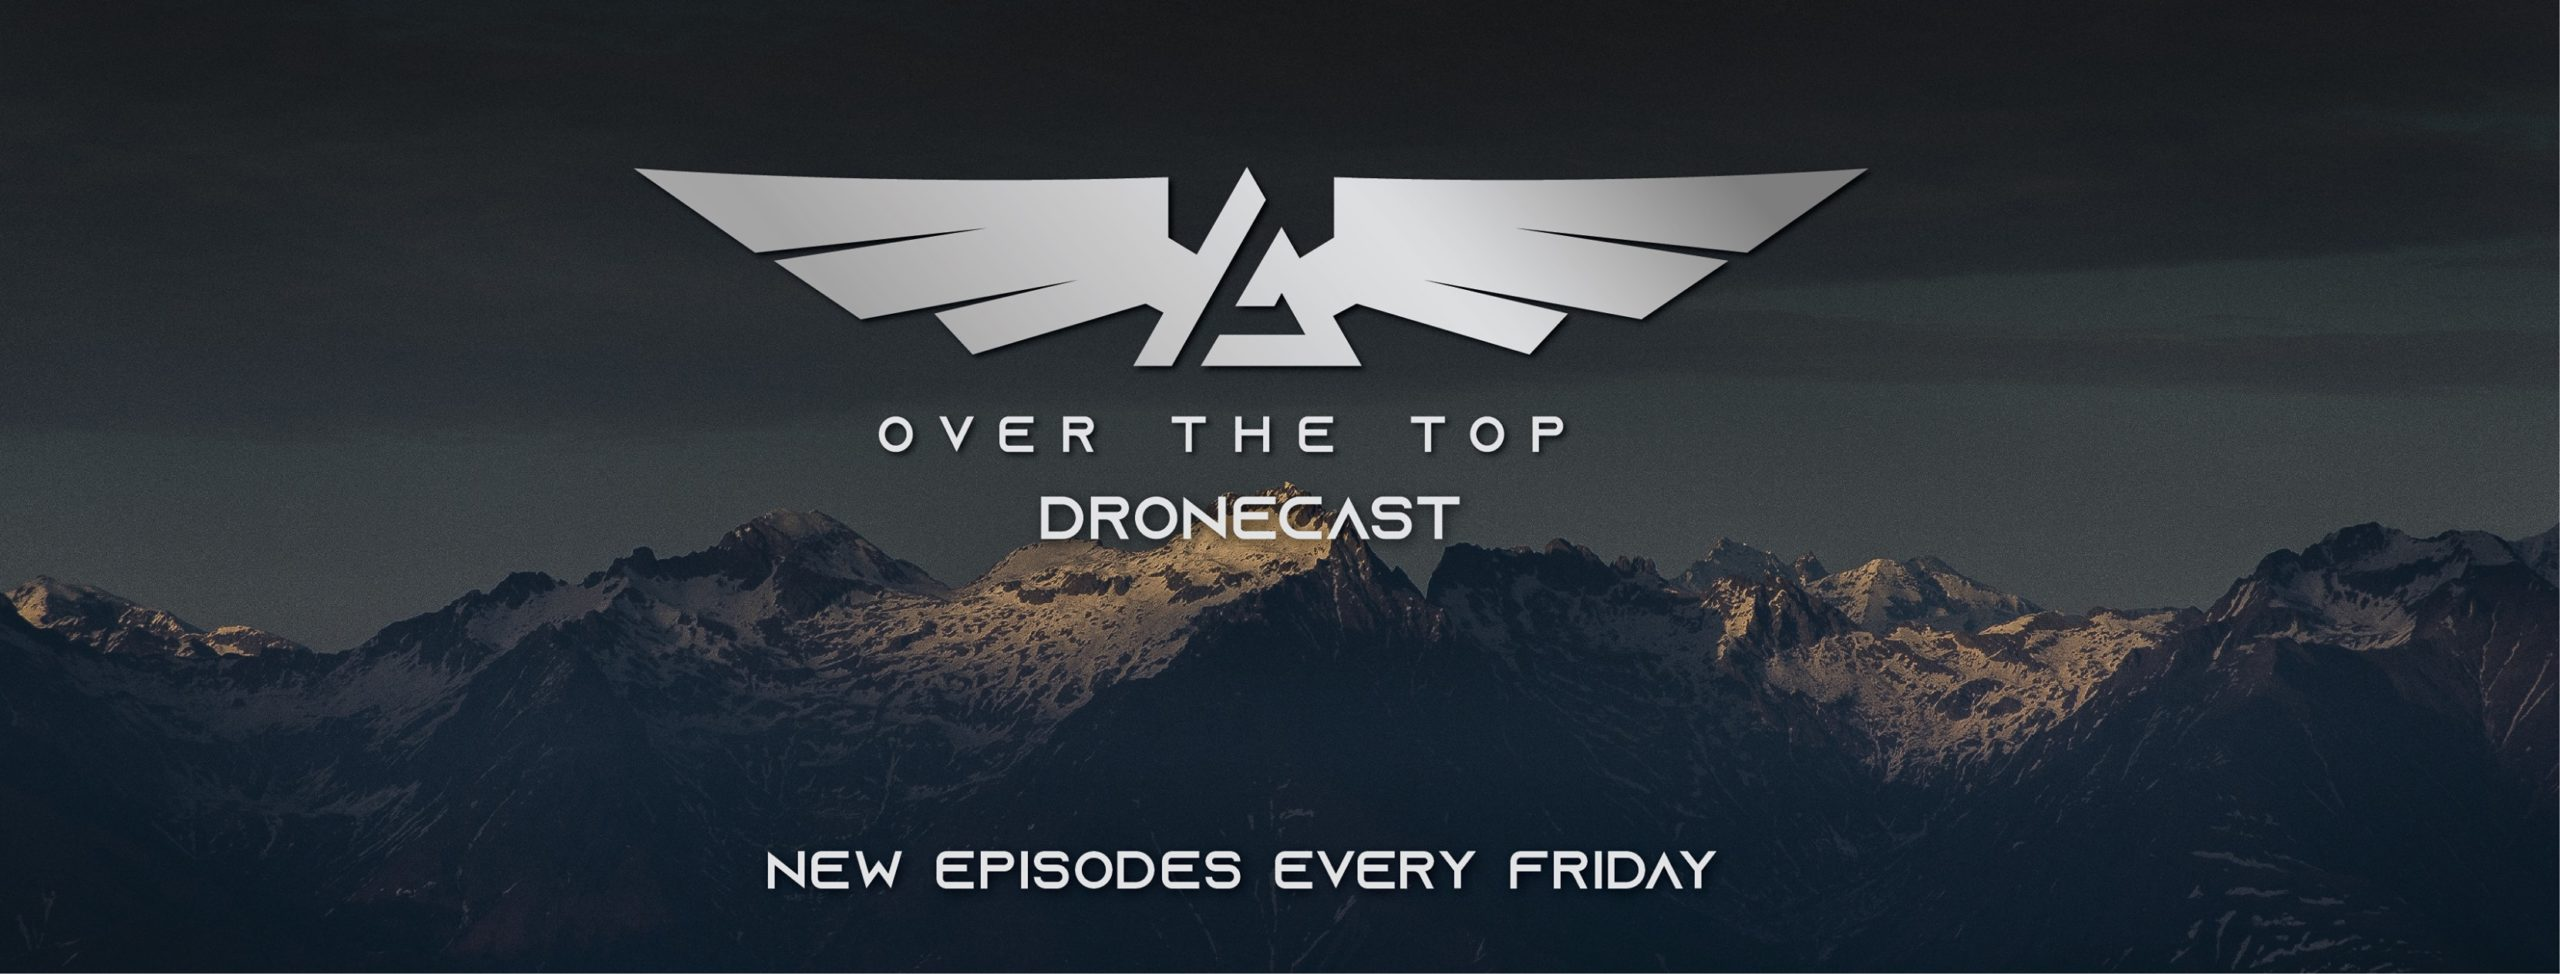 over the top dronecast | Unicorn Insurance Brokers | Drone Insurance